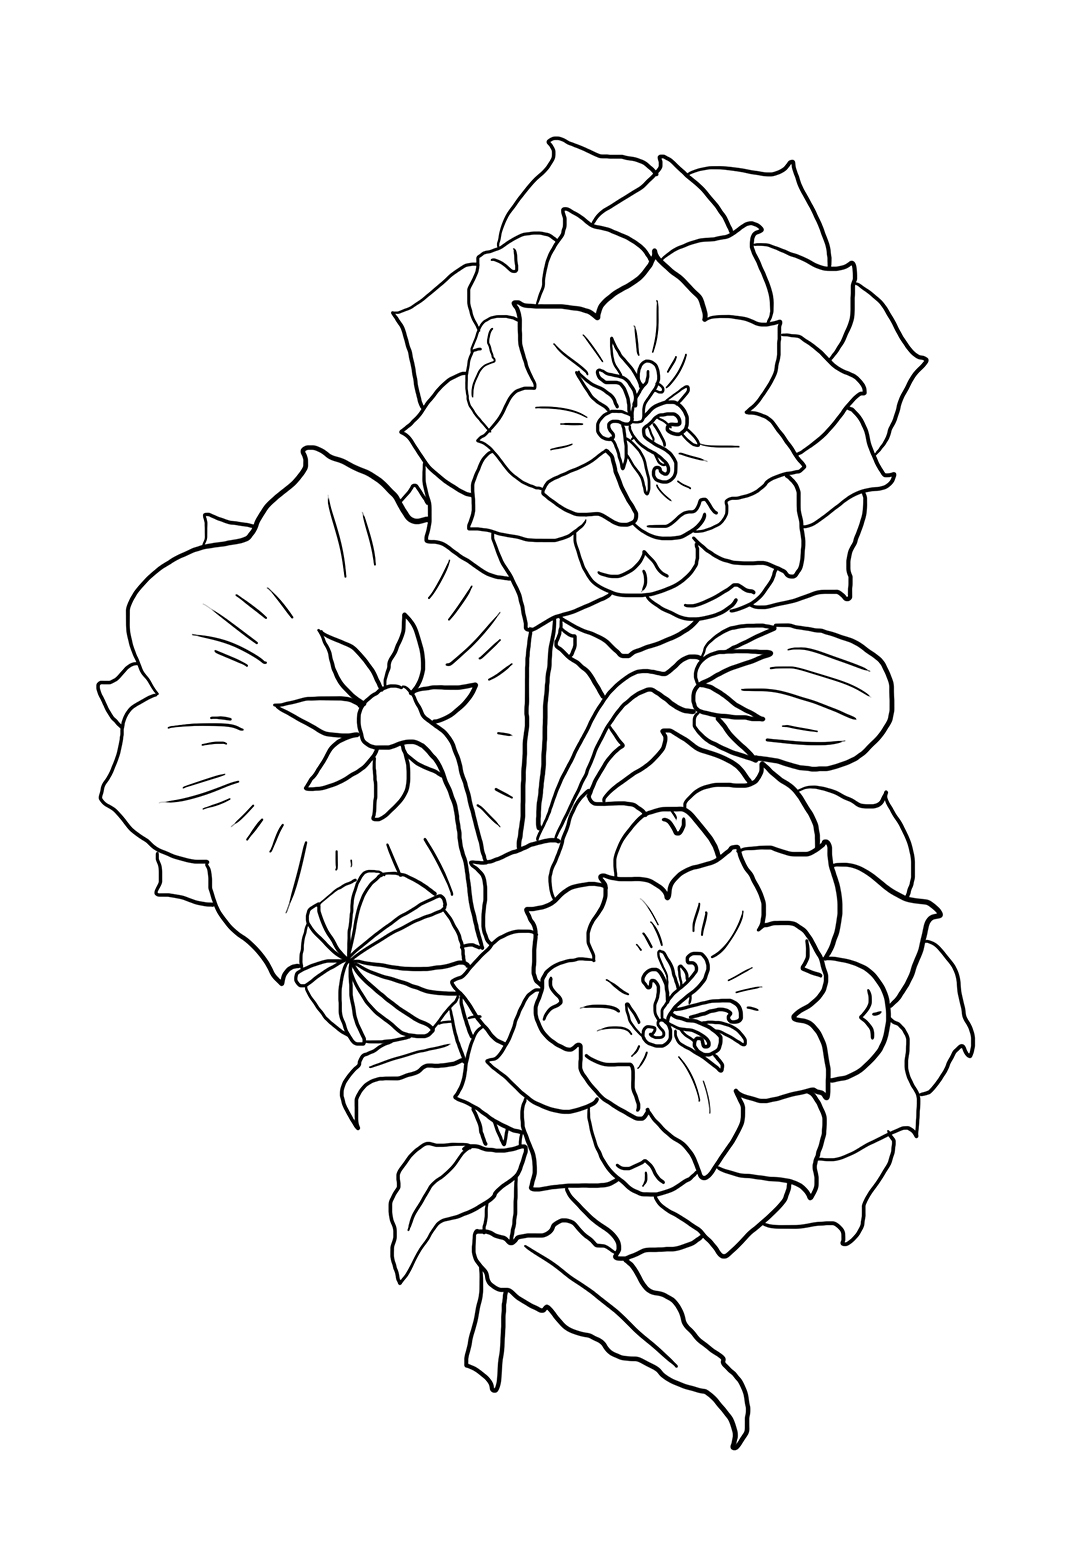 drawing of flower to print and color